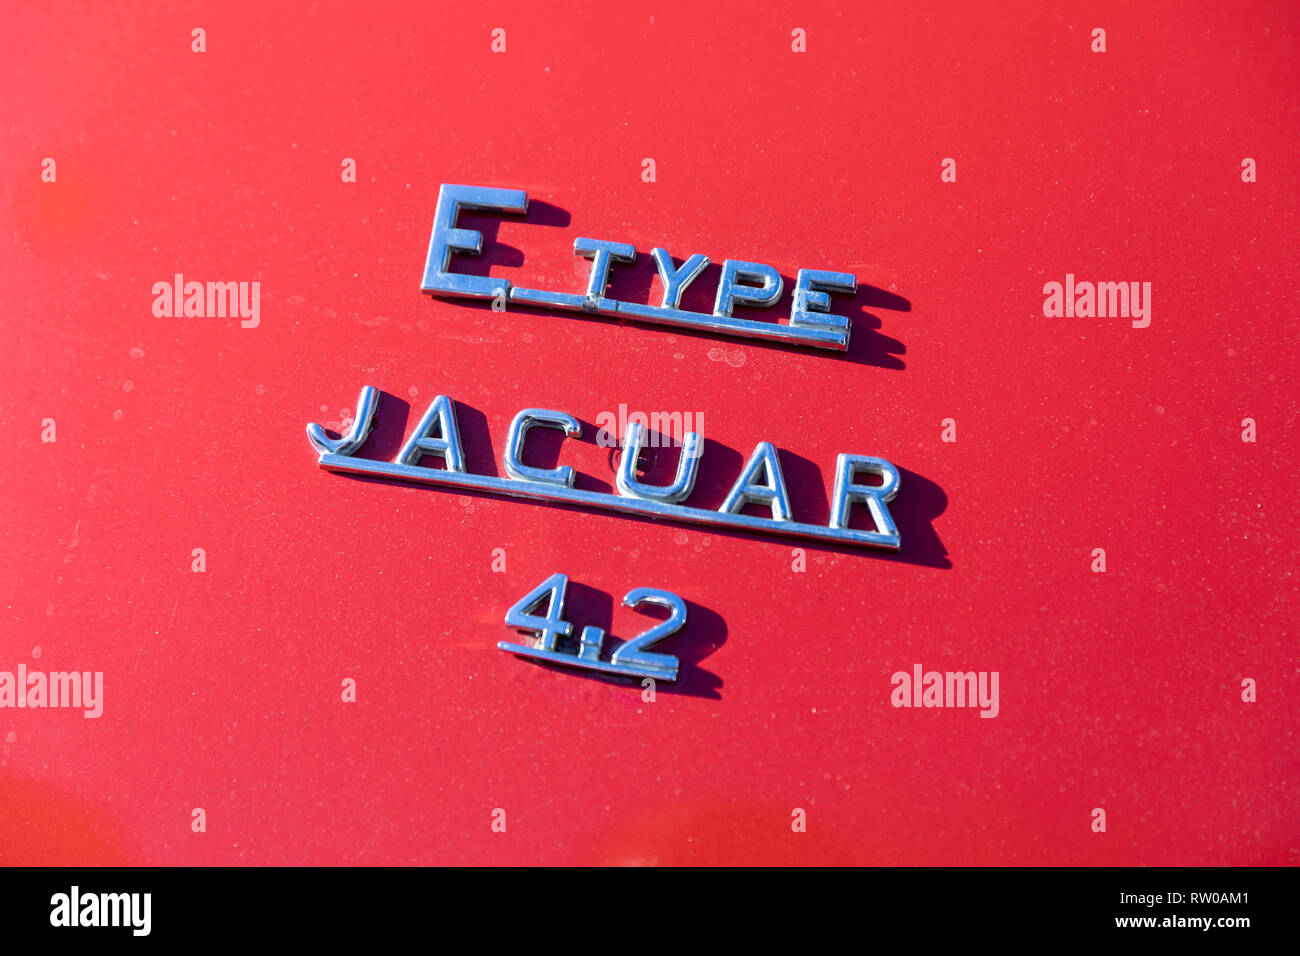 E Type Jaguar 4.2 , chrome letters on red background - Stock Image